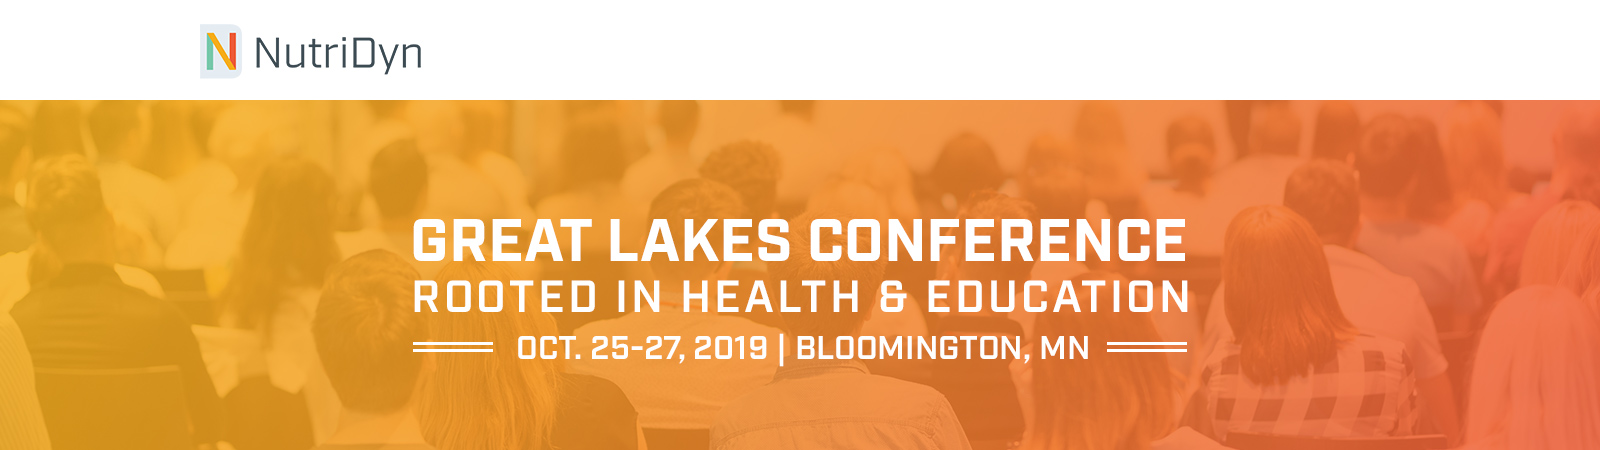 Great Lakes Conference 2019